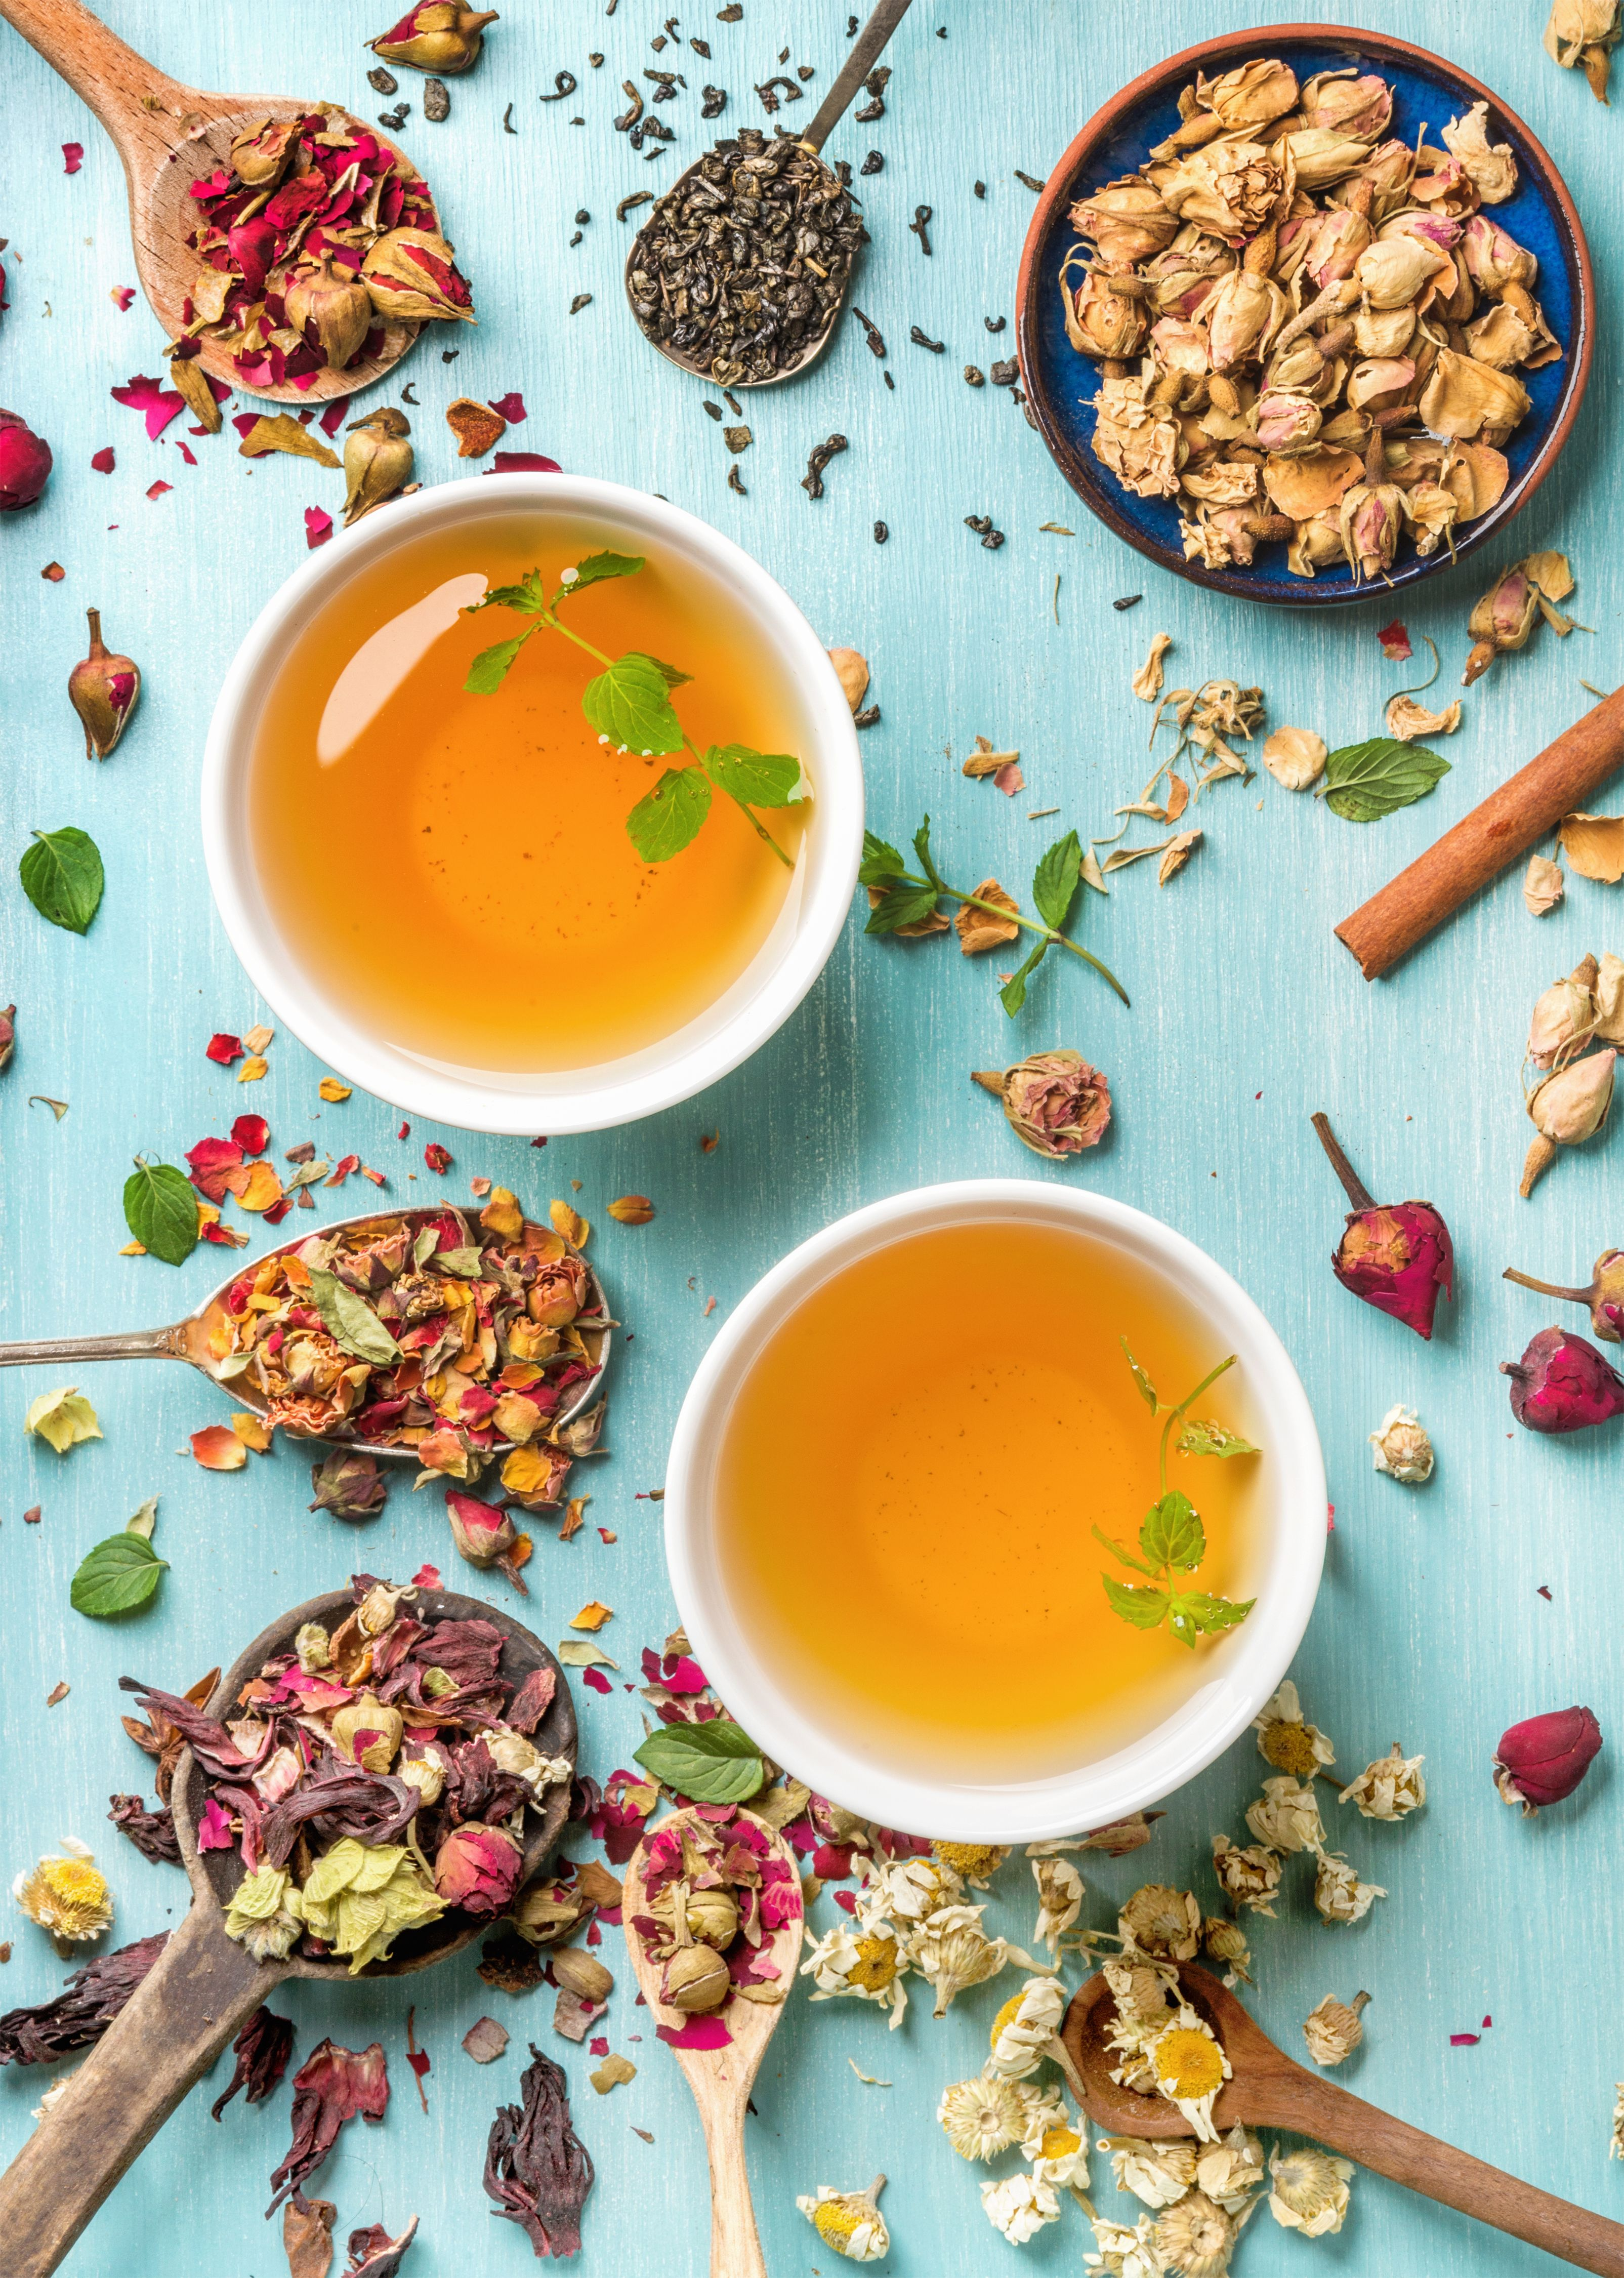 there are a couple of herbal teas that can help you catch your zzz's